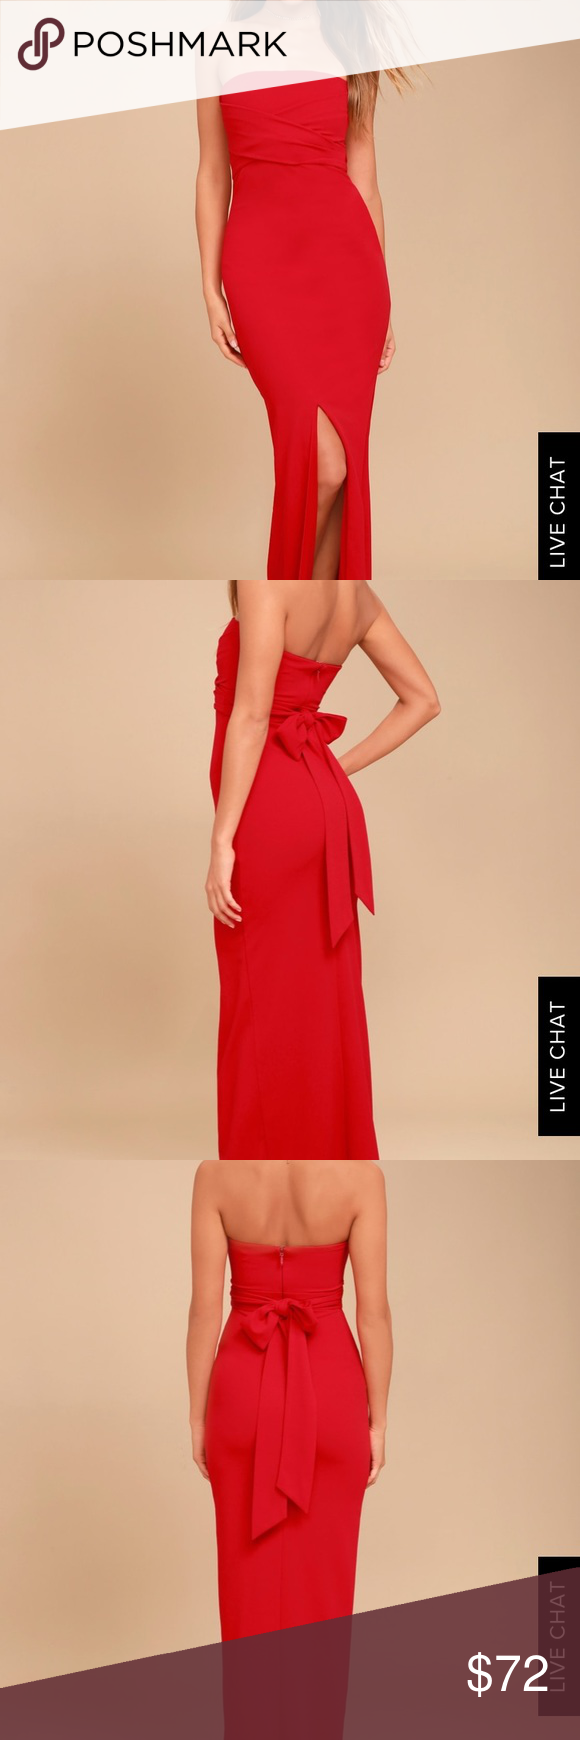 OWN THE NIGHT RED STRAPLESS MAXI DRESS OWN THE NIGHT RED STRAPLESS MAXI  DRESS Size Small b11612256